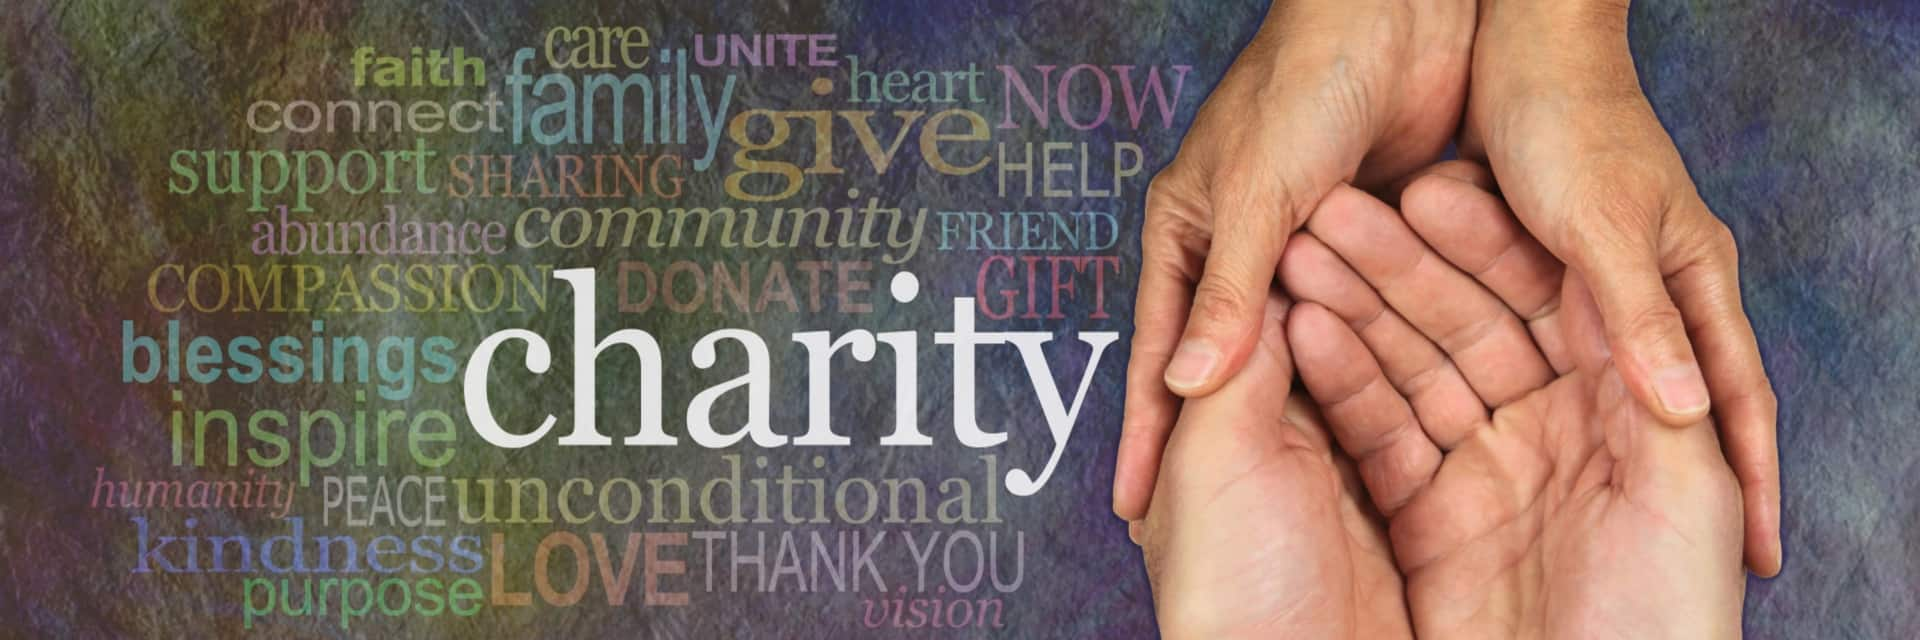 Graphic image featuring words about charitable giving.